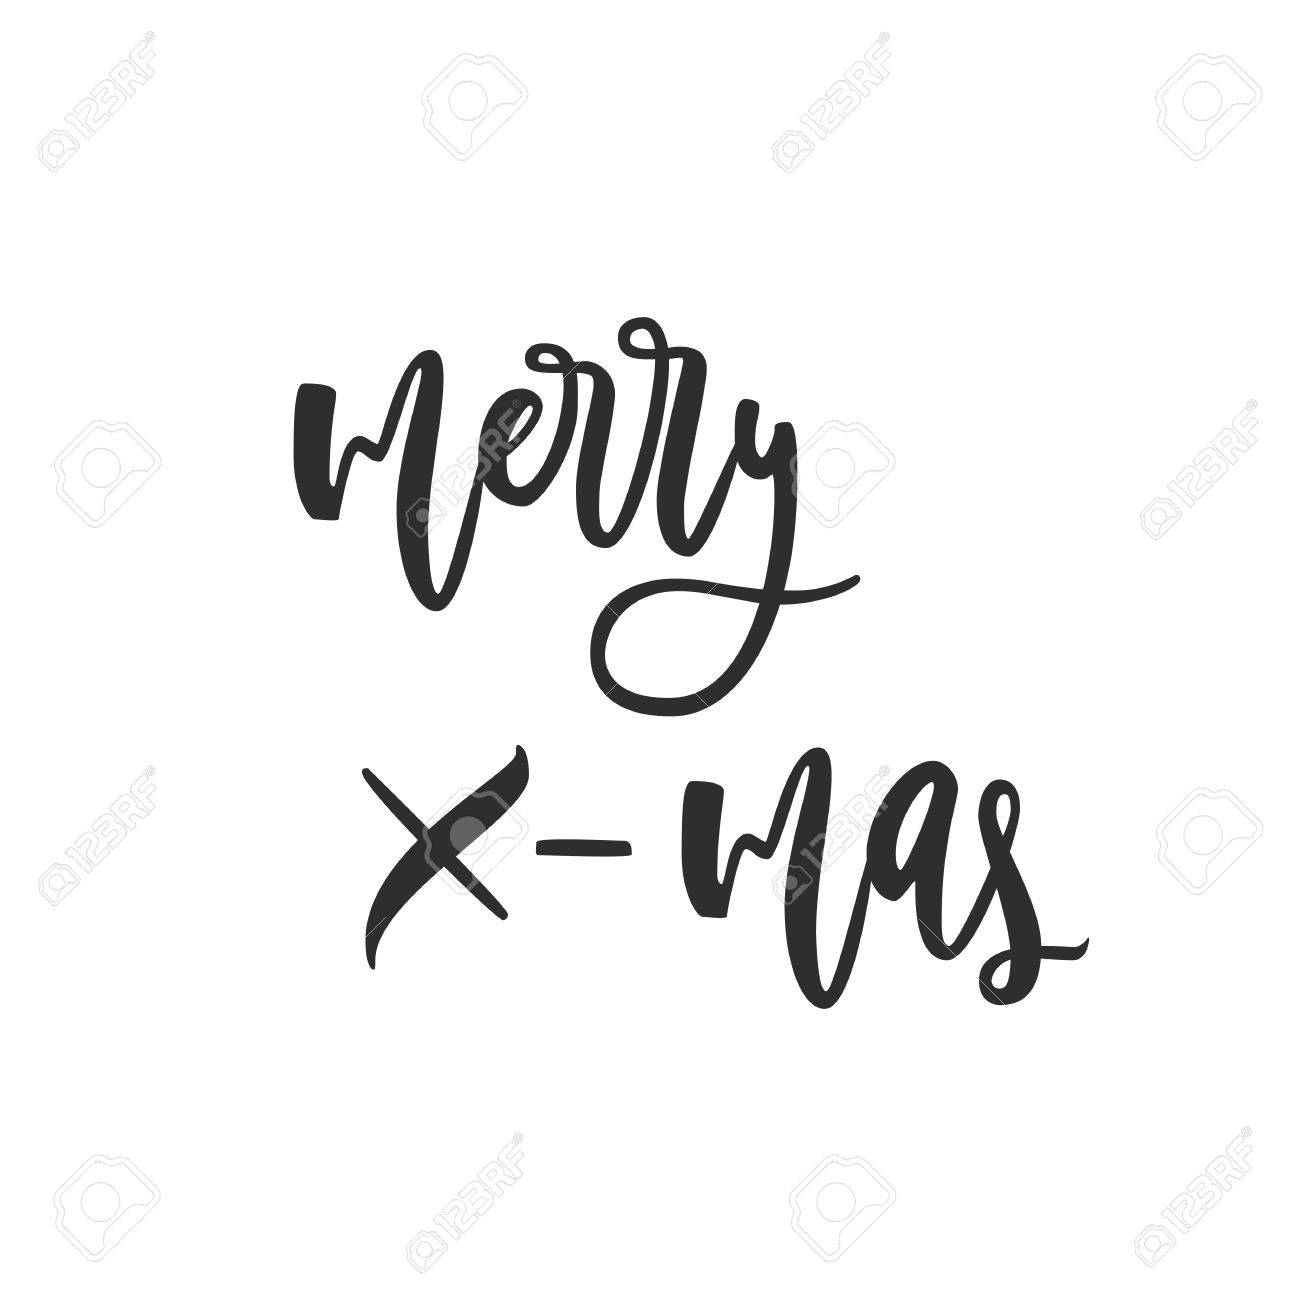 Merry X Mas Greeting Card Black And White Hand Drawn Lettering